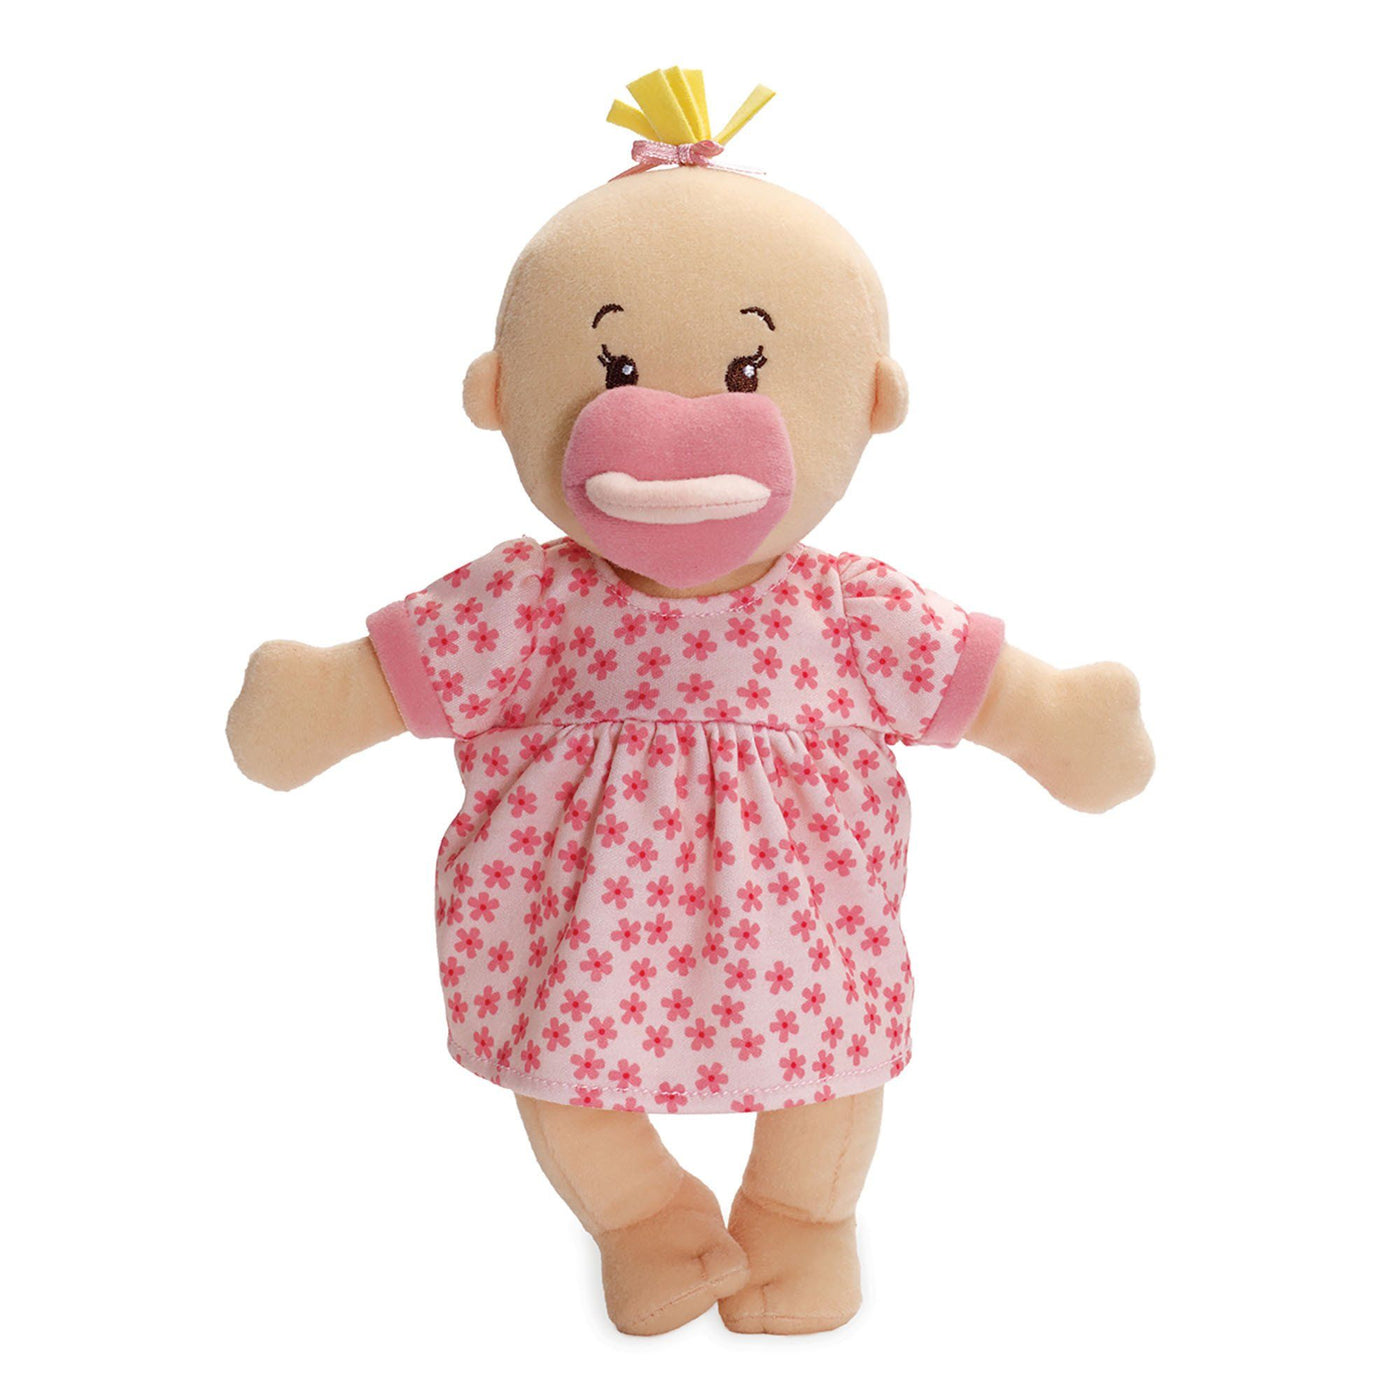 Wee Baby Stella Peach Doll - Manhattan Toy